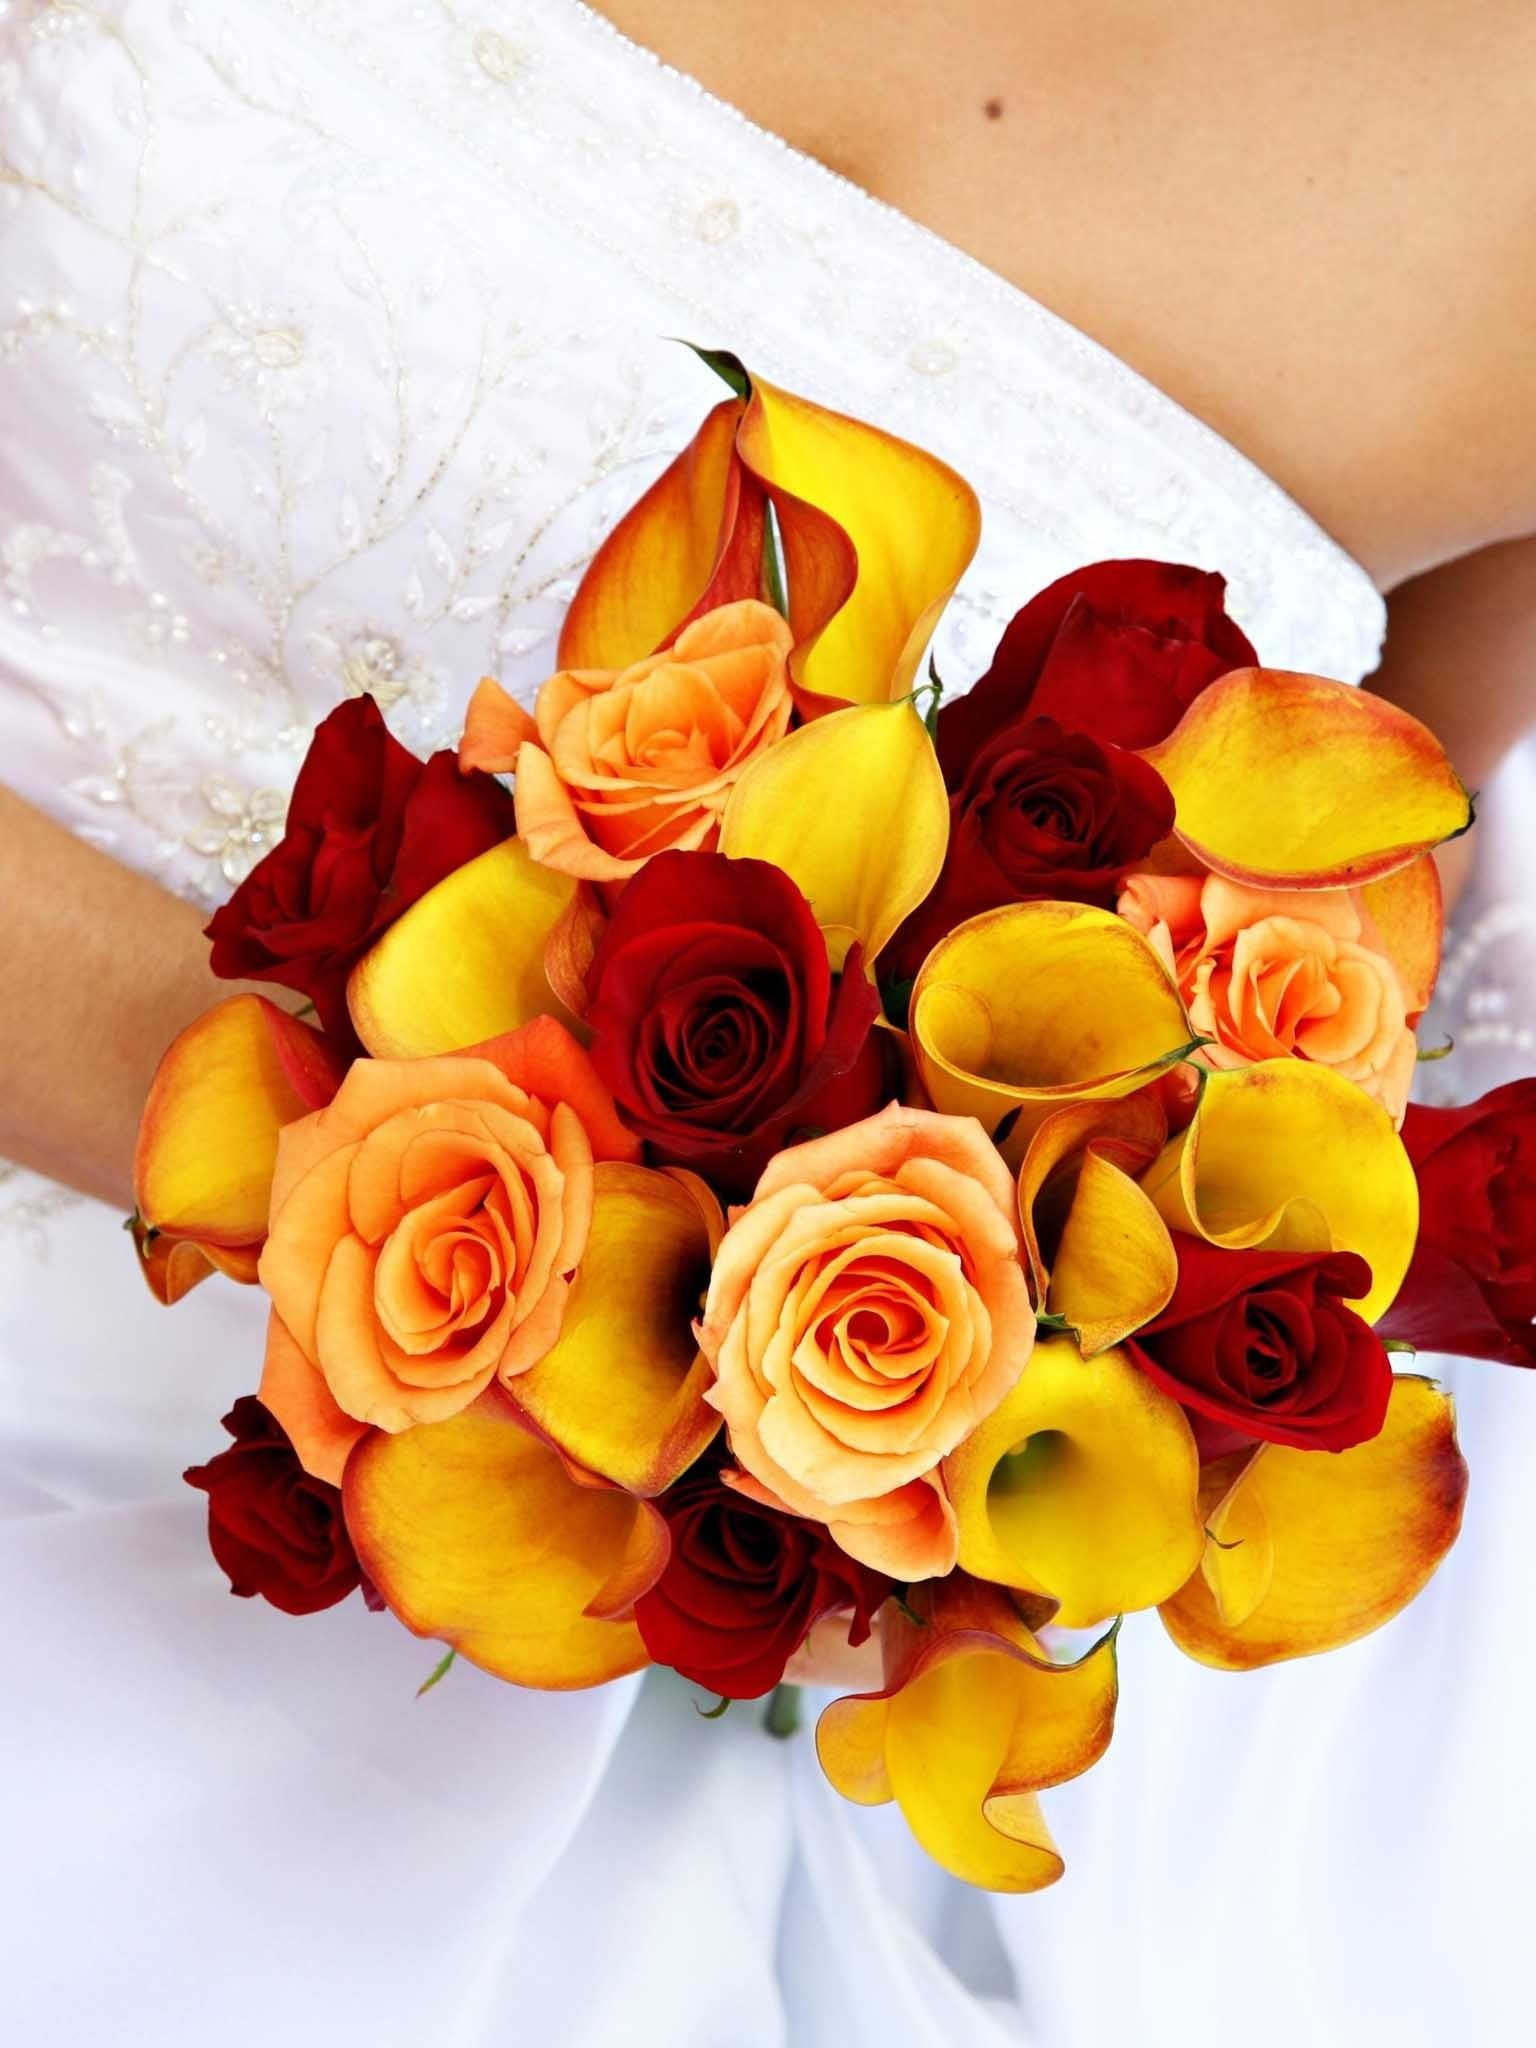 These colours together look wonderful! Bridal bouquet